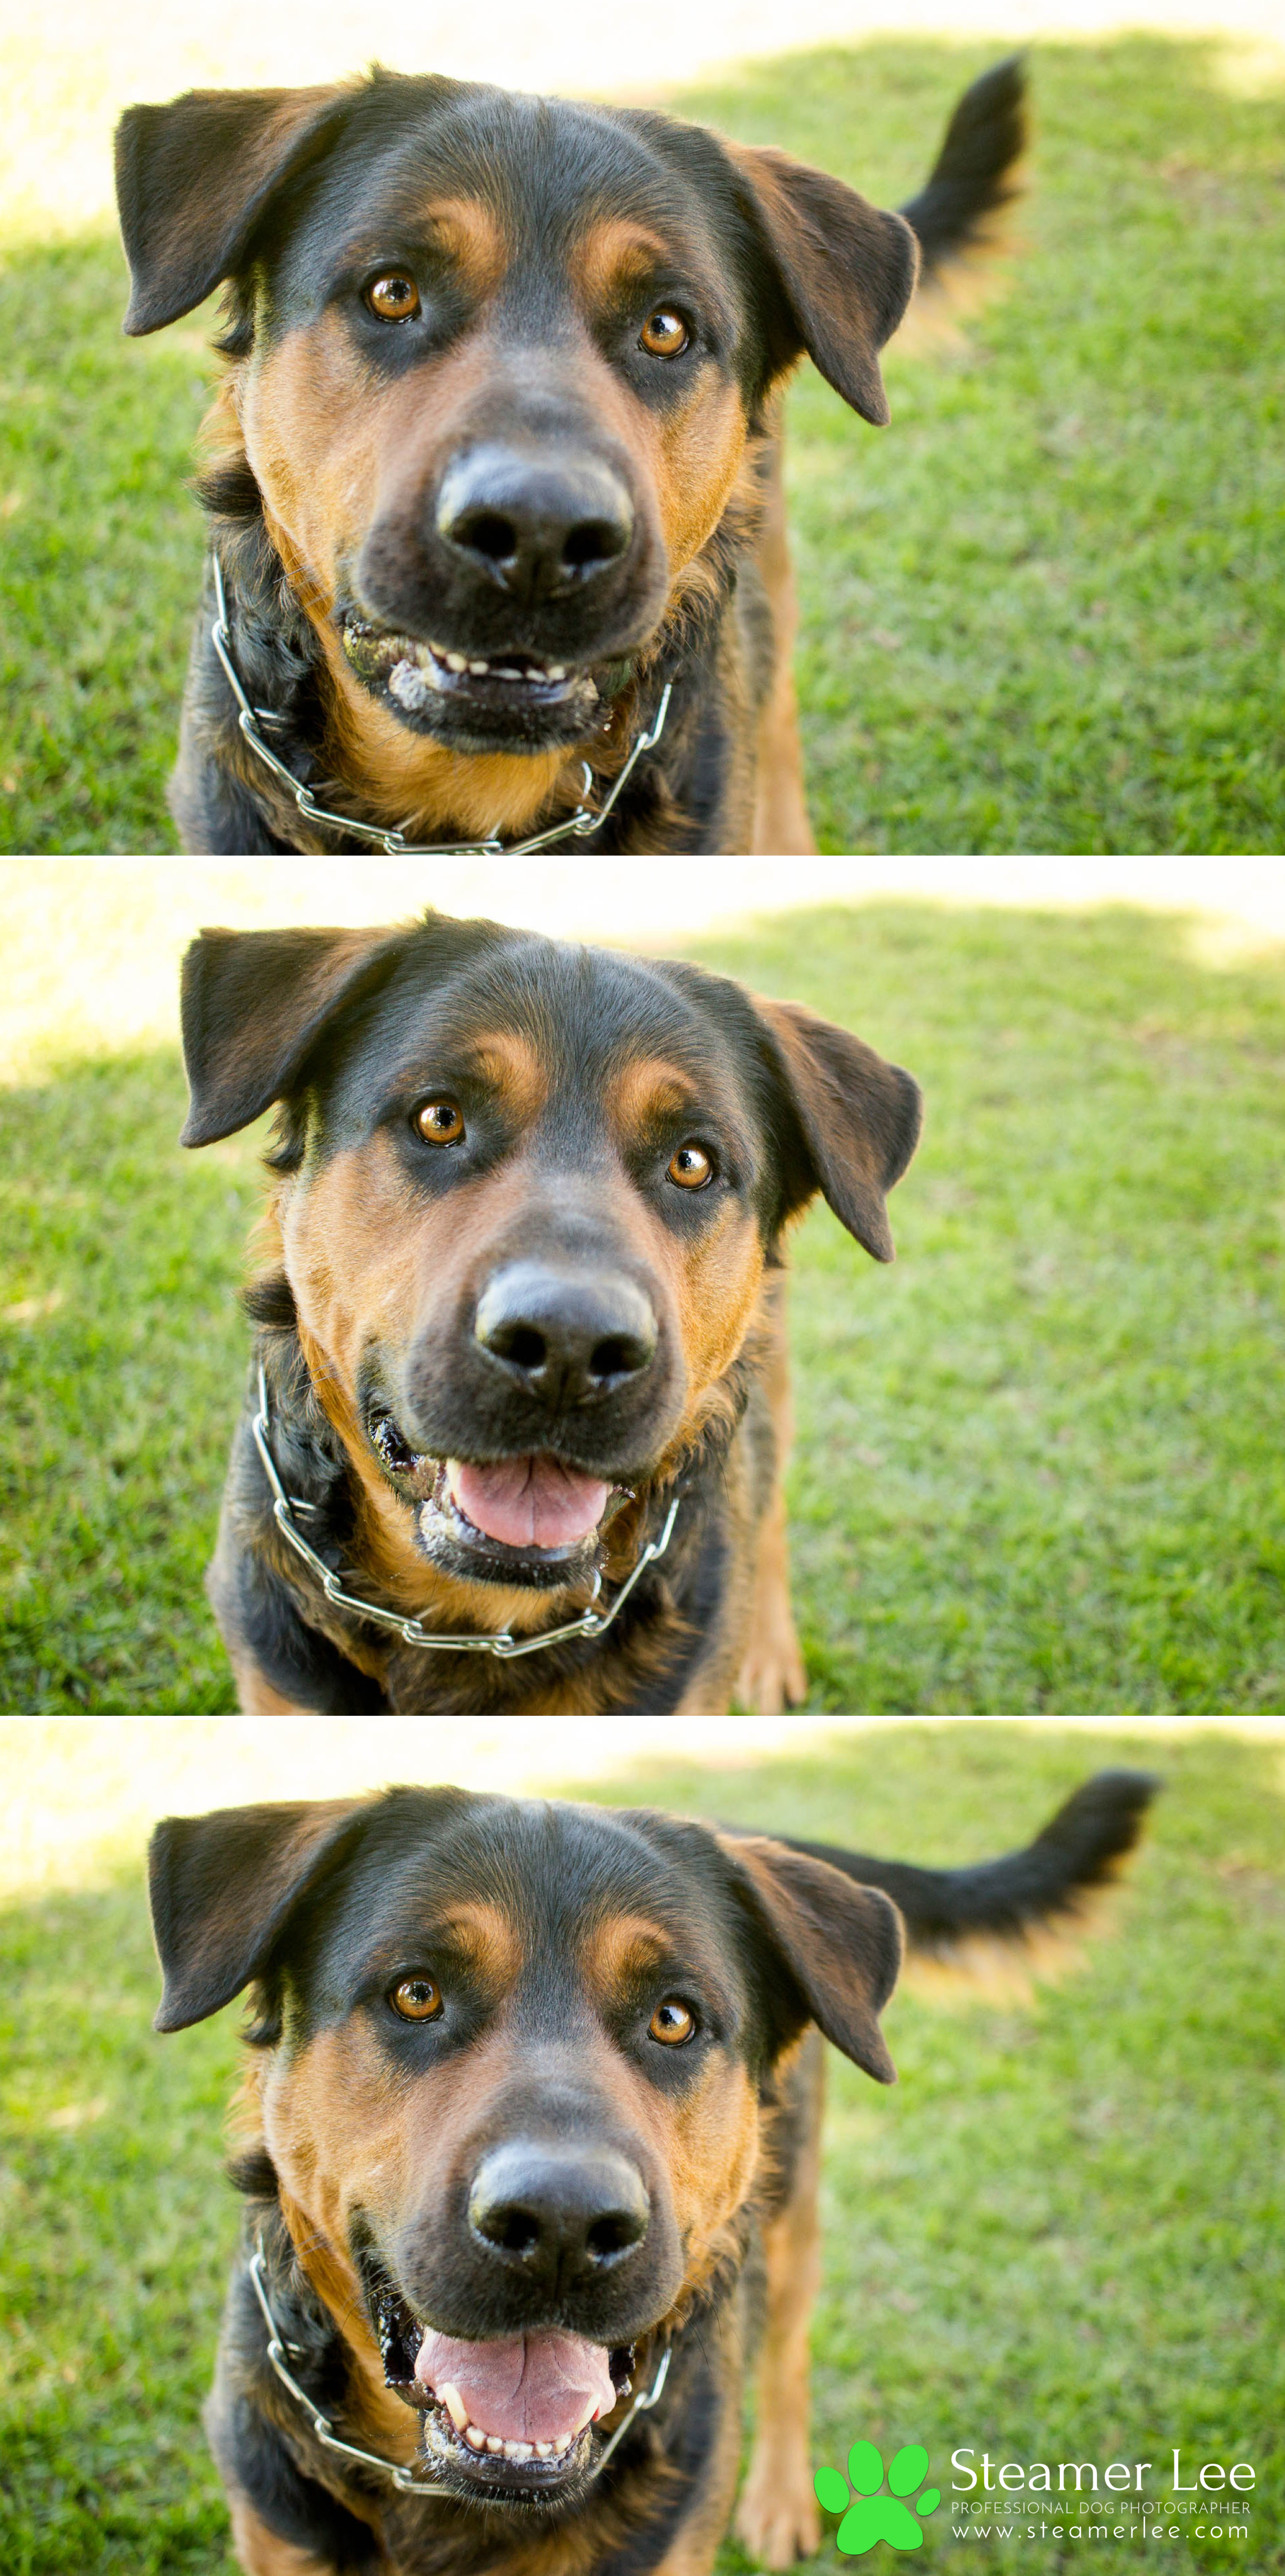 009 Steamer Lee Dog Photography - Orange County Dog Photography - German Shepherd Rottweiler Mix_Poodle.JPG